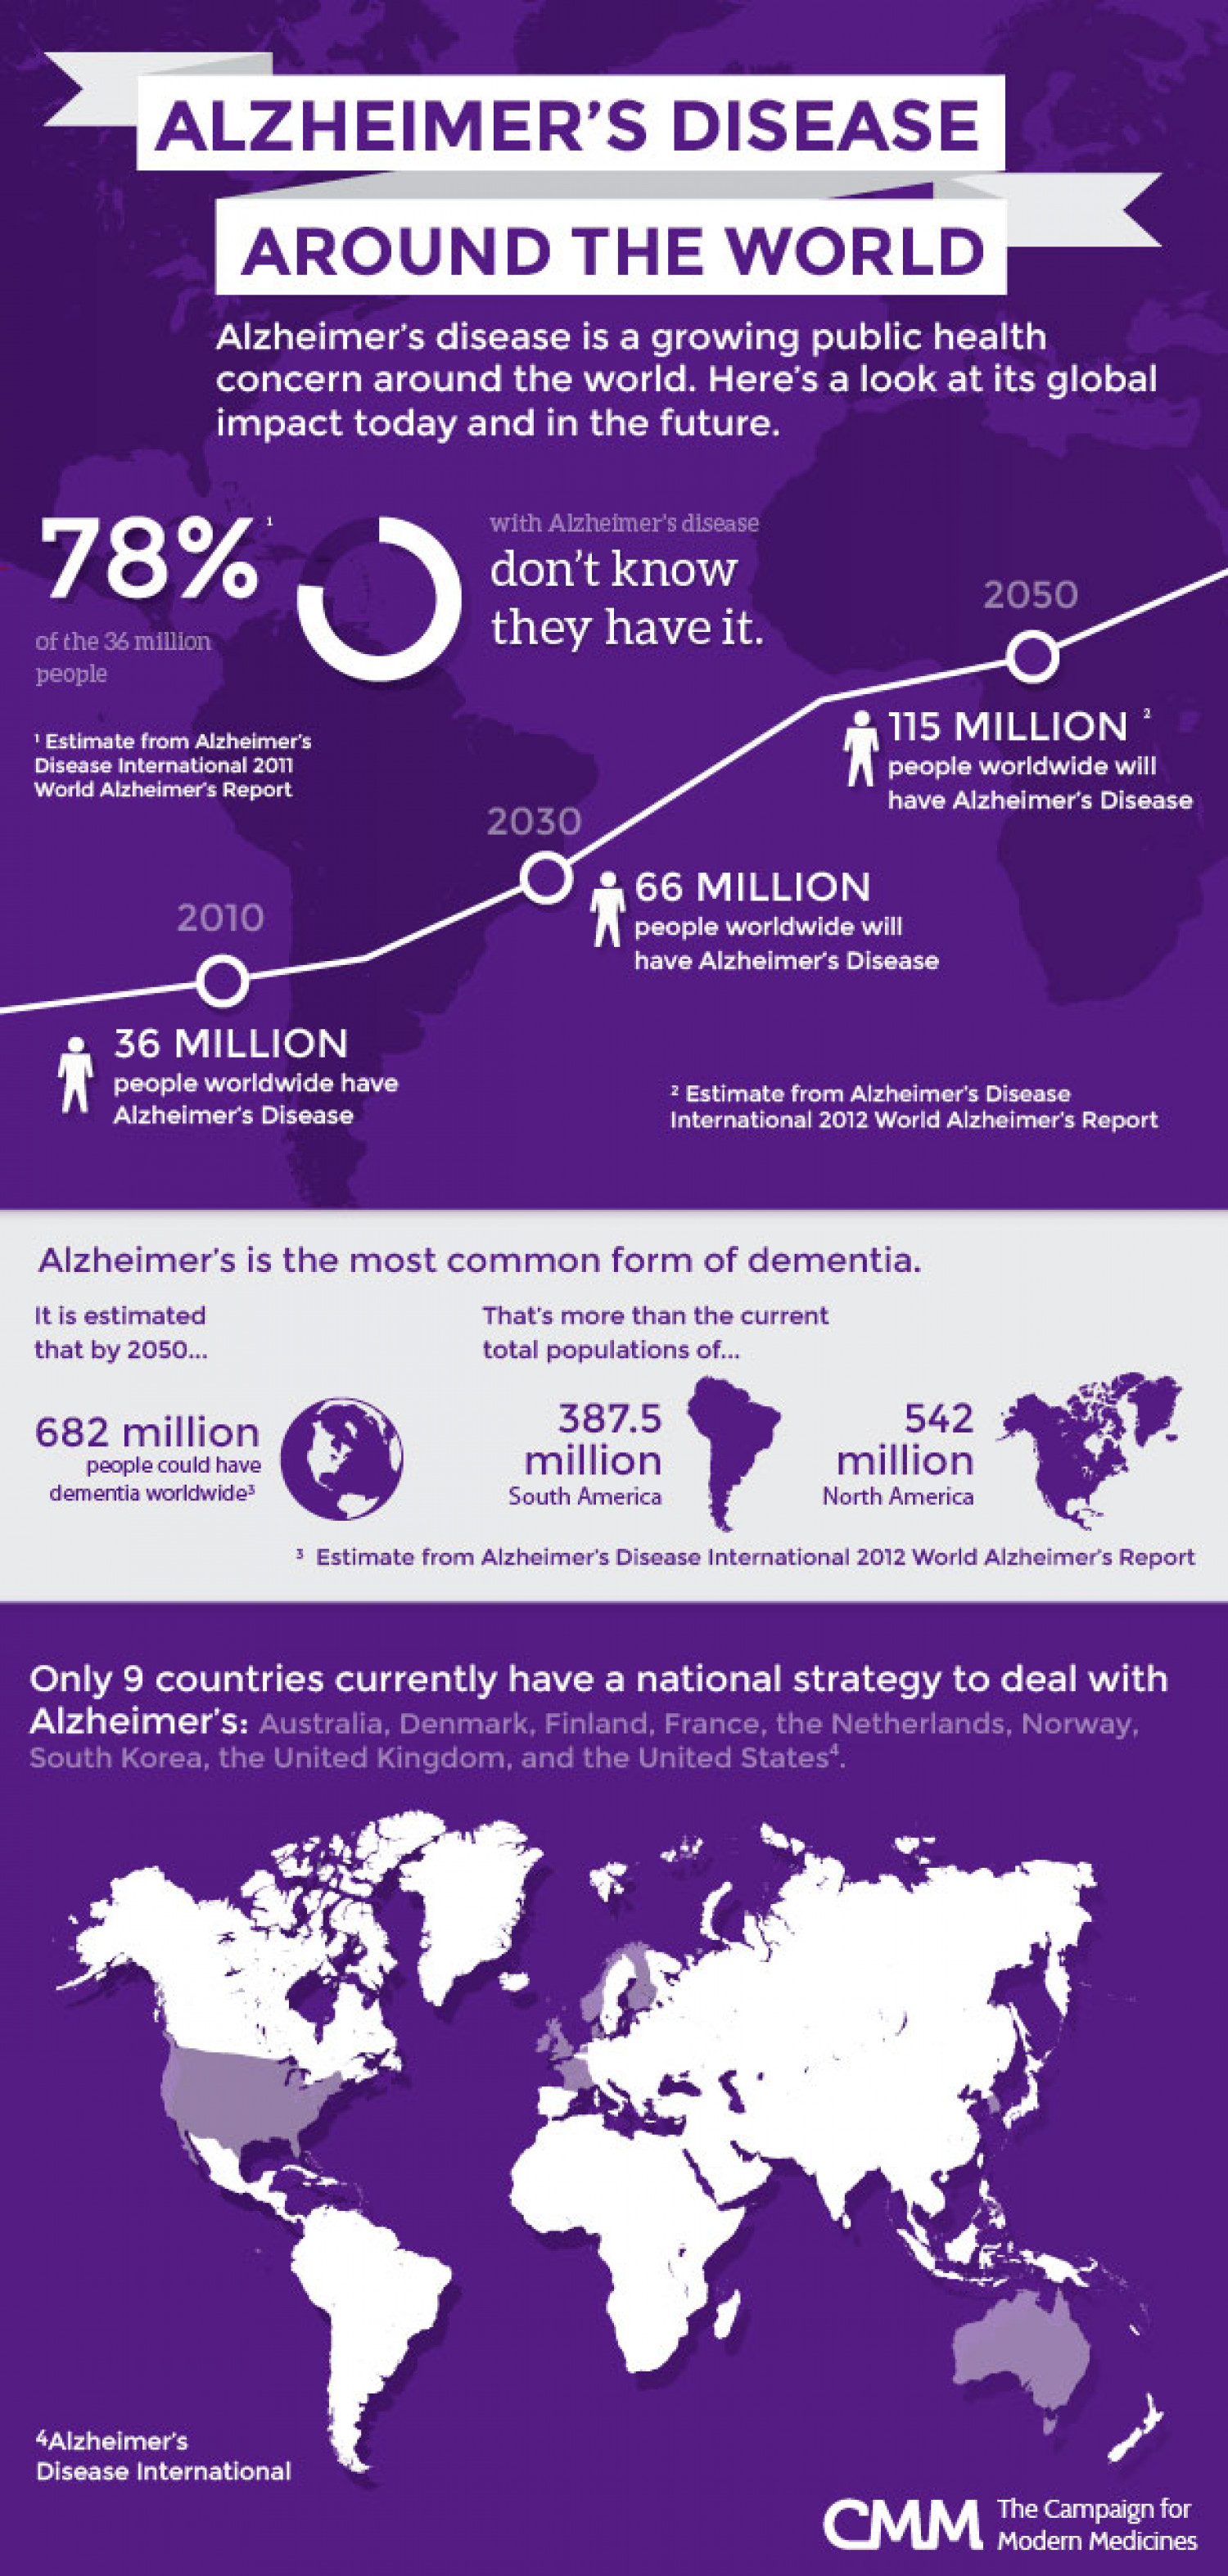 Alzheimer's Disease Around the World Infographic